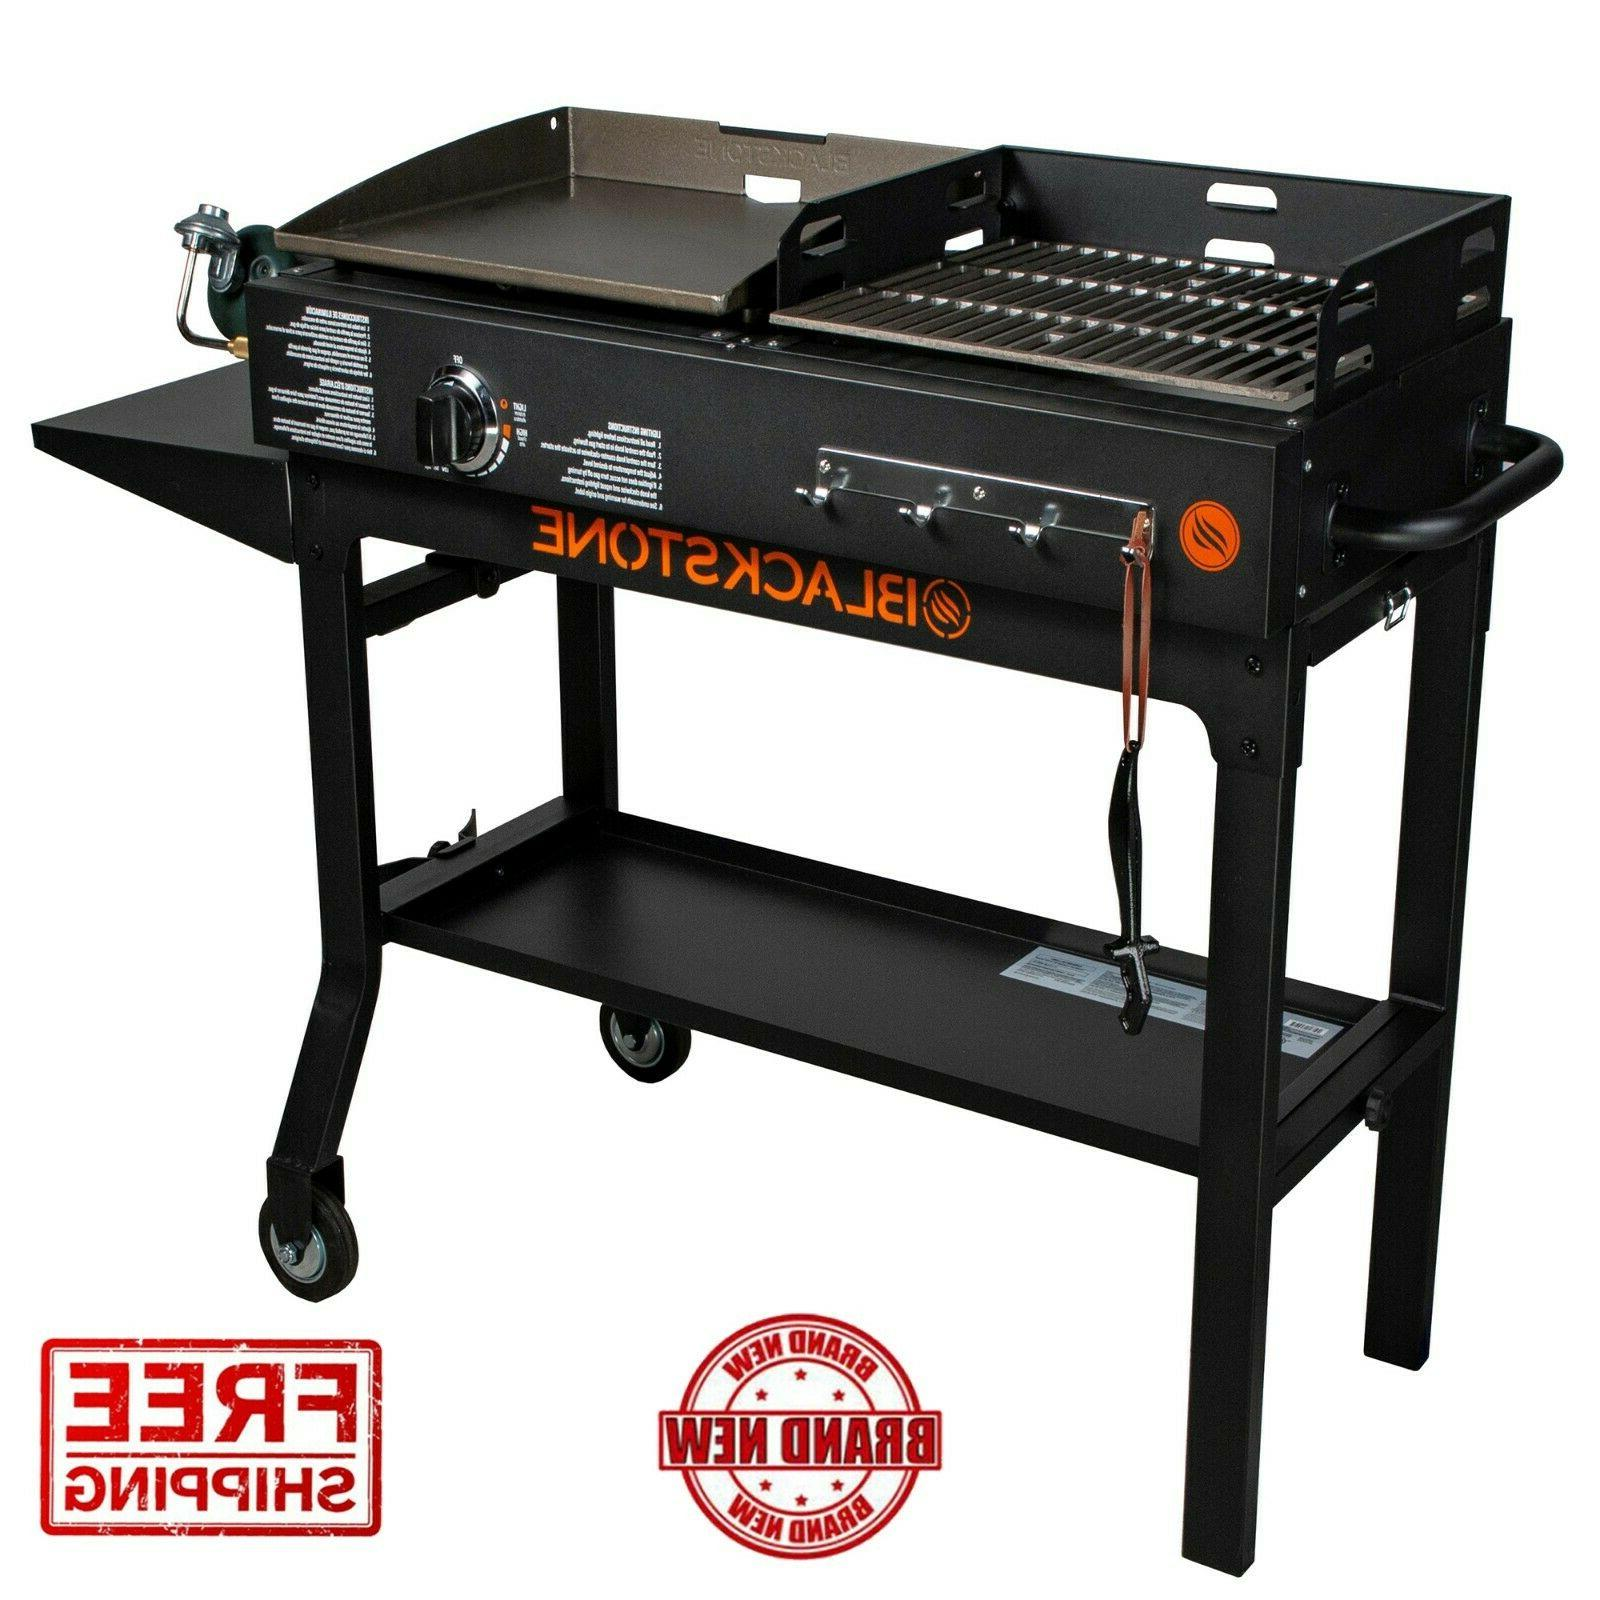 Blackstone Griddle Charcoal Grill Black Duo Combo Outdoor Co